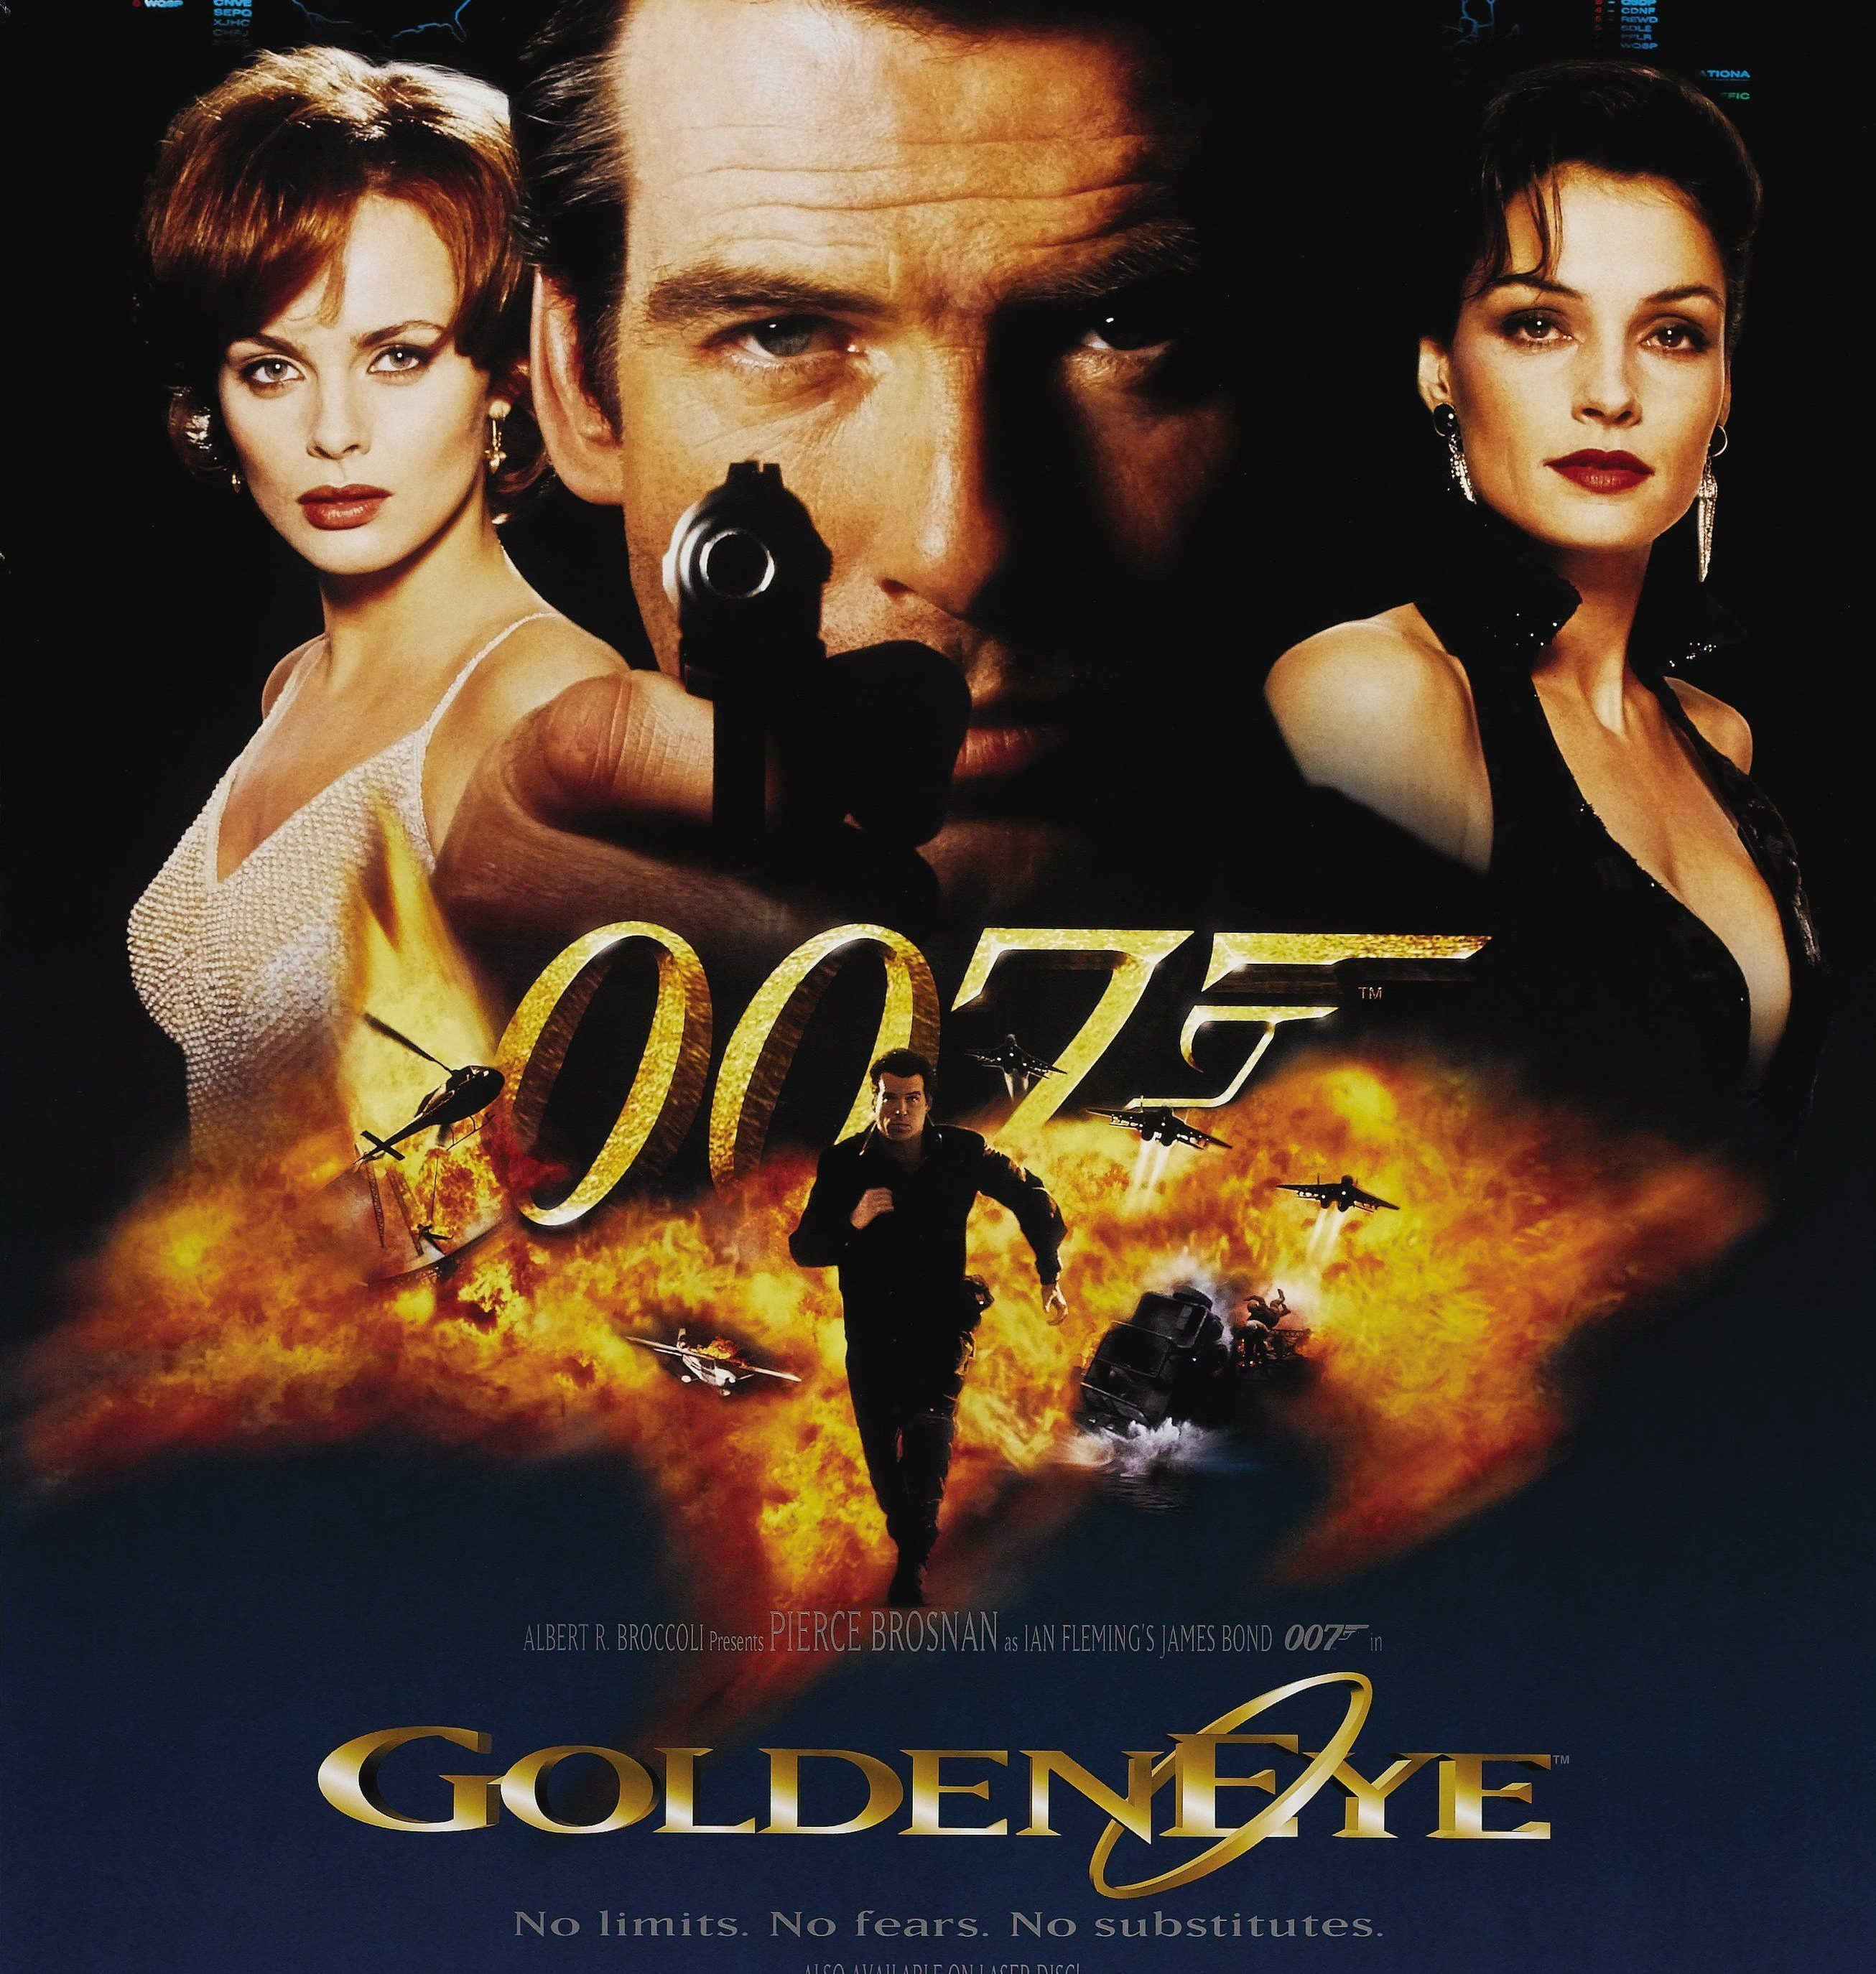 bf5e7faa384eeb735a463d69f6e1f953 e1582706437926 11 Of The Best James Bond Movies (And 10 Of The Worst)